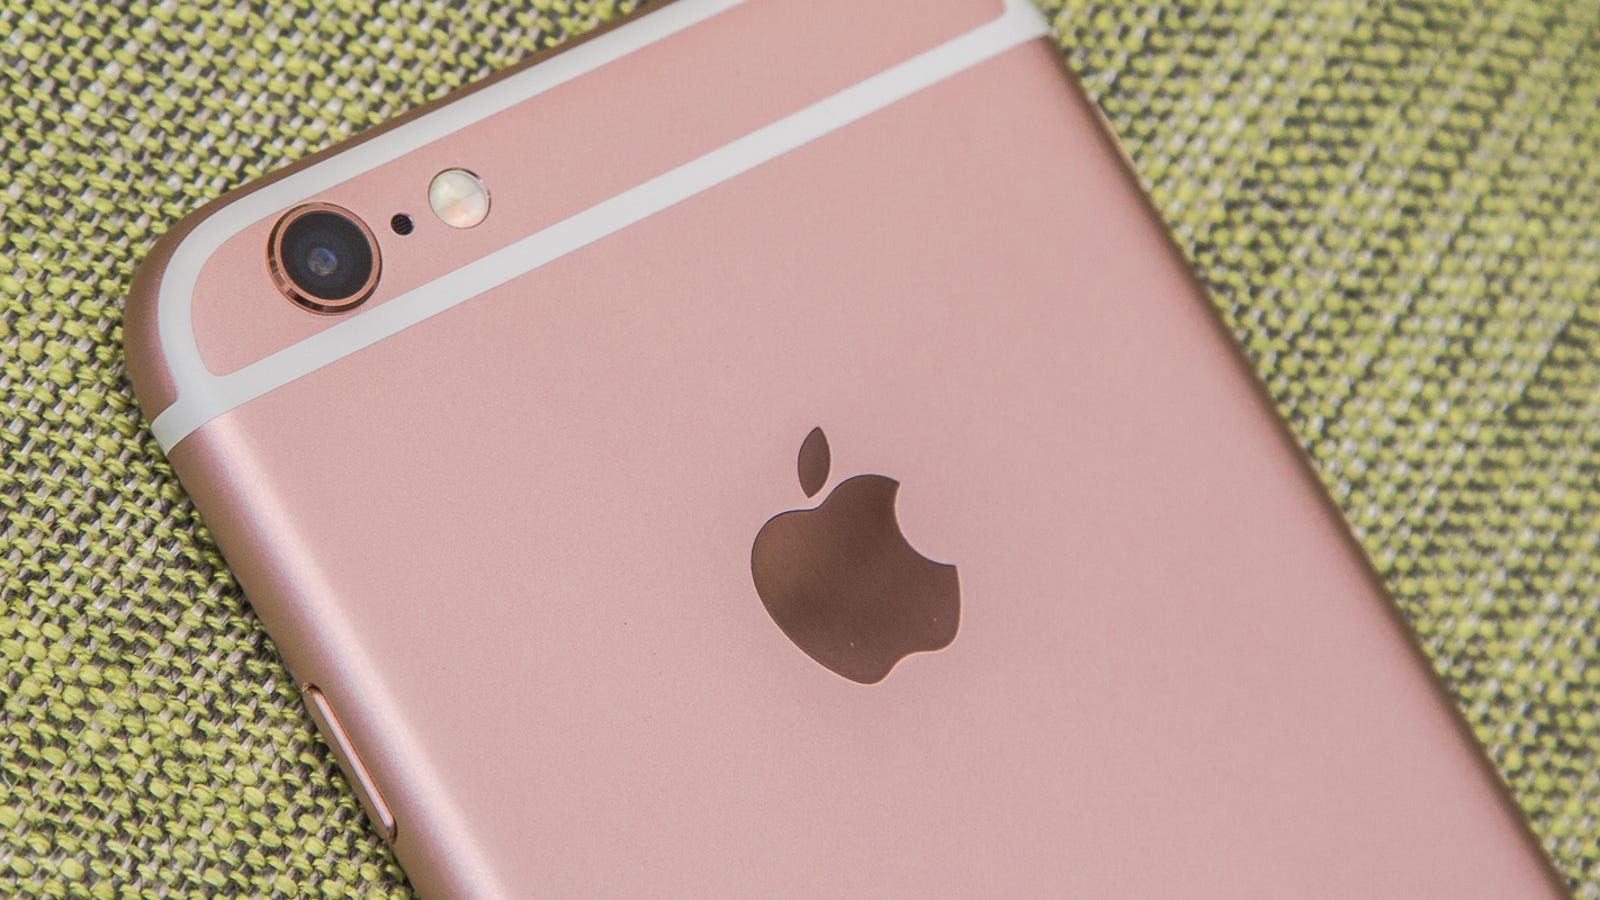 Fuck Videos For Mobiles pertaining to iphone 6s camera review: apple is no longer the king of mobile photos